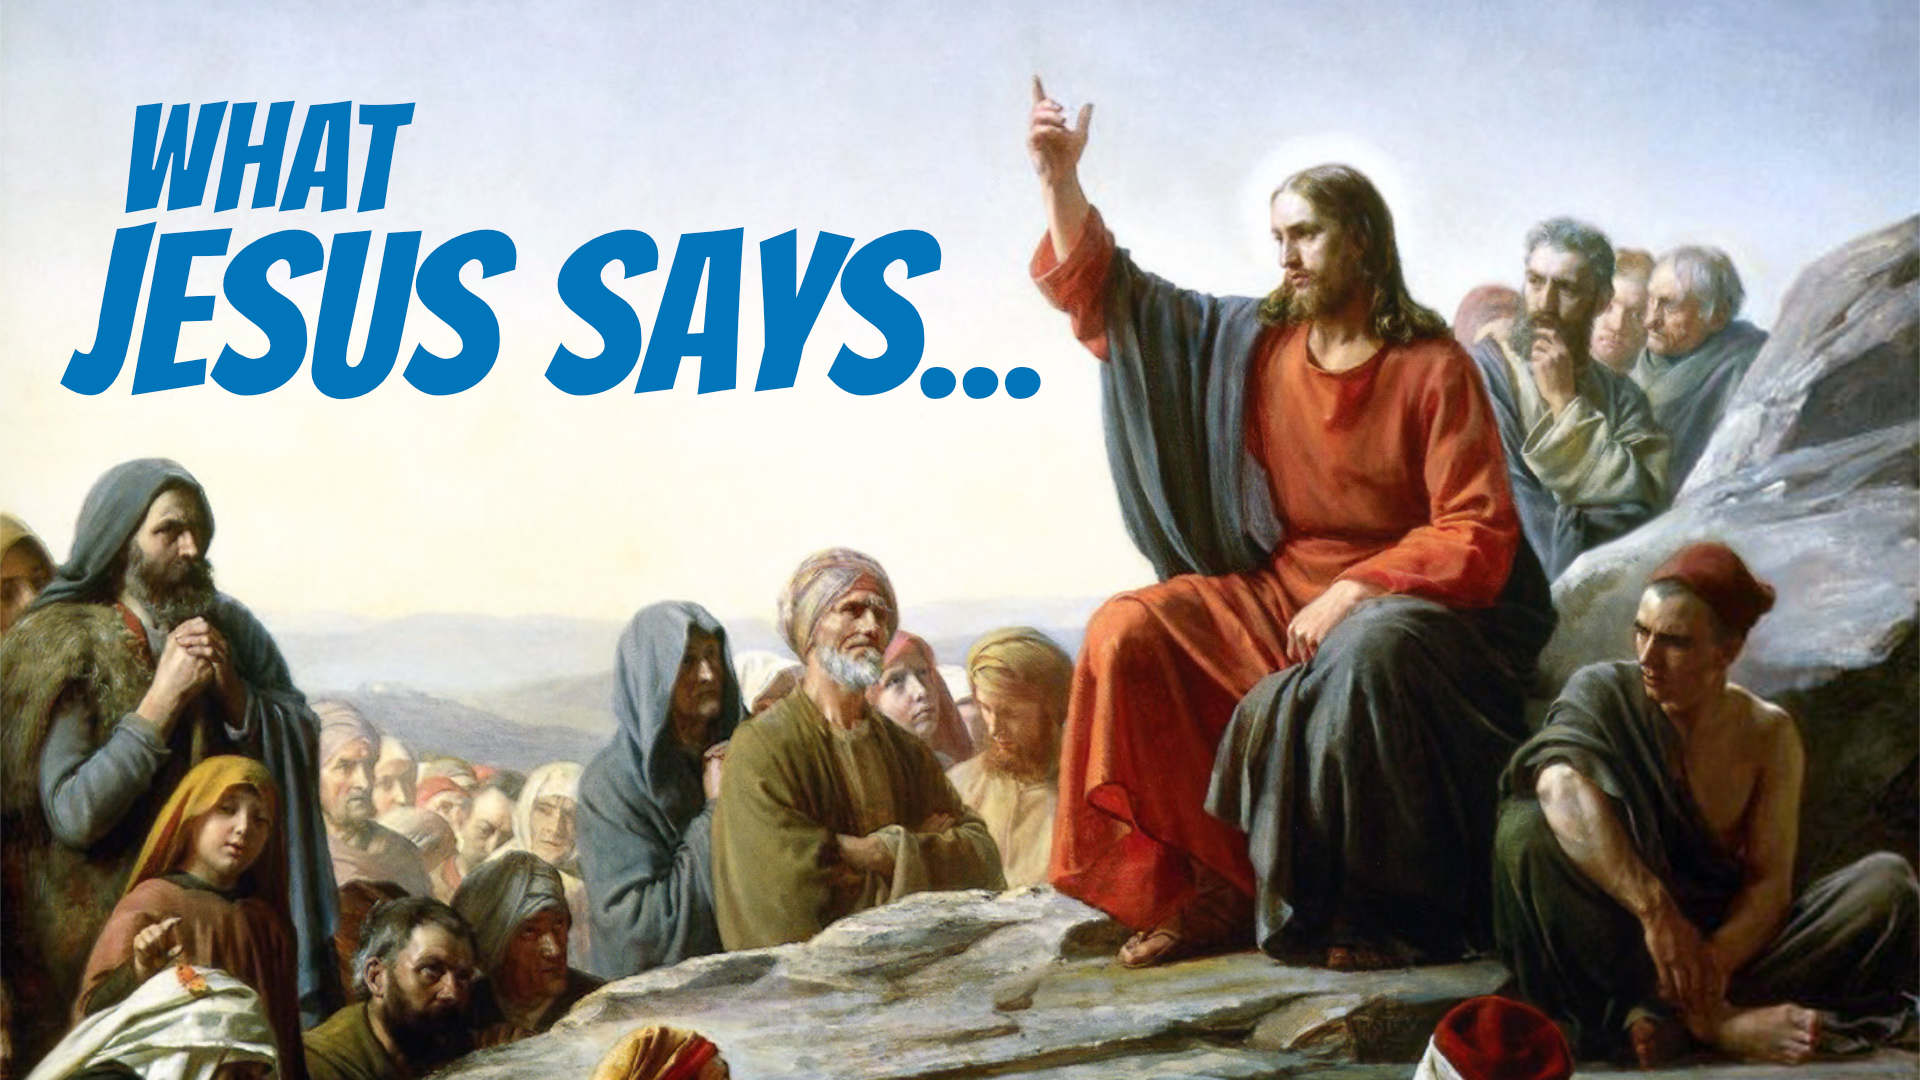 What Jesus Says... • Jan. 6 - Apr. 7, 2019